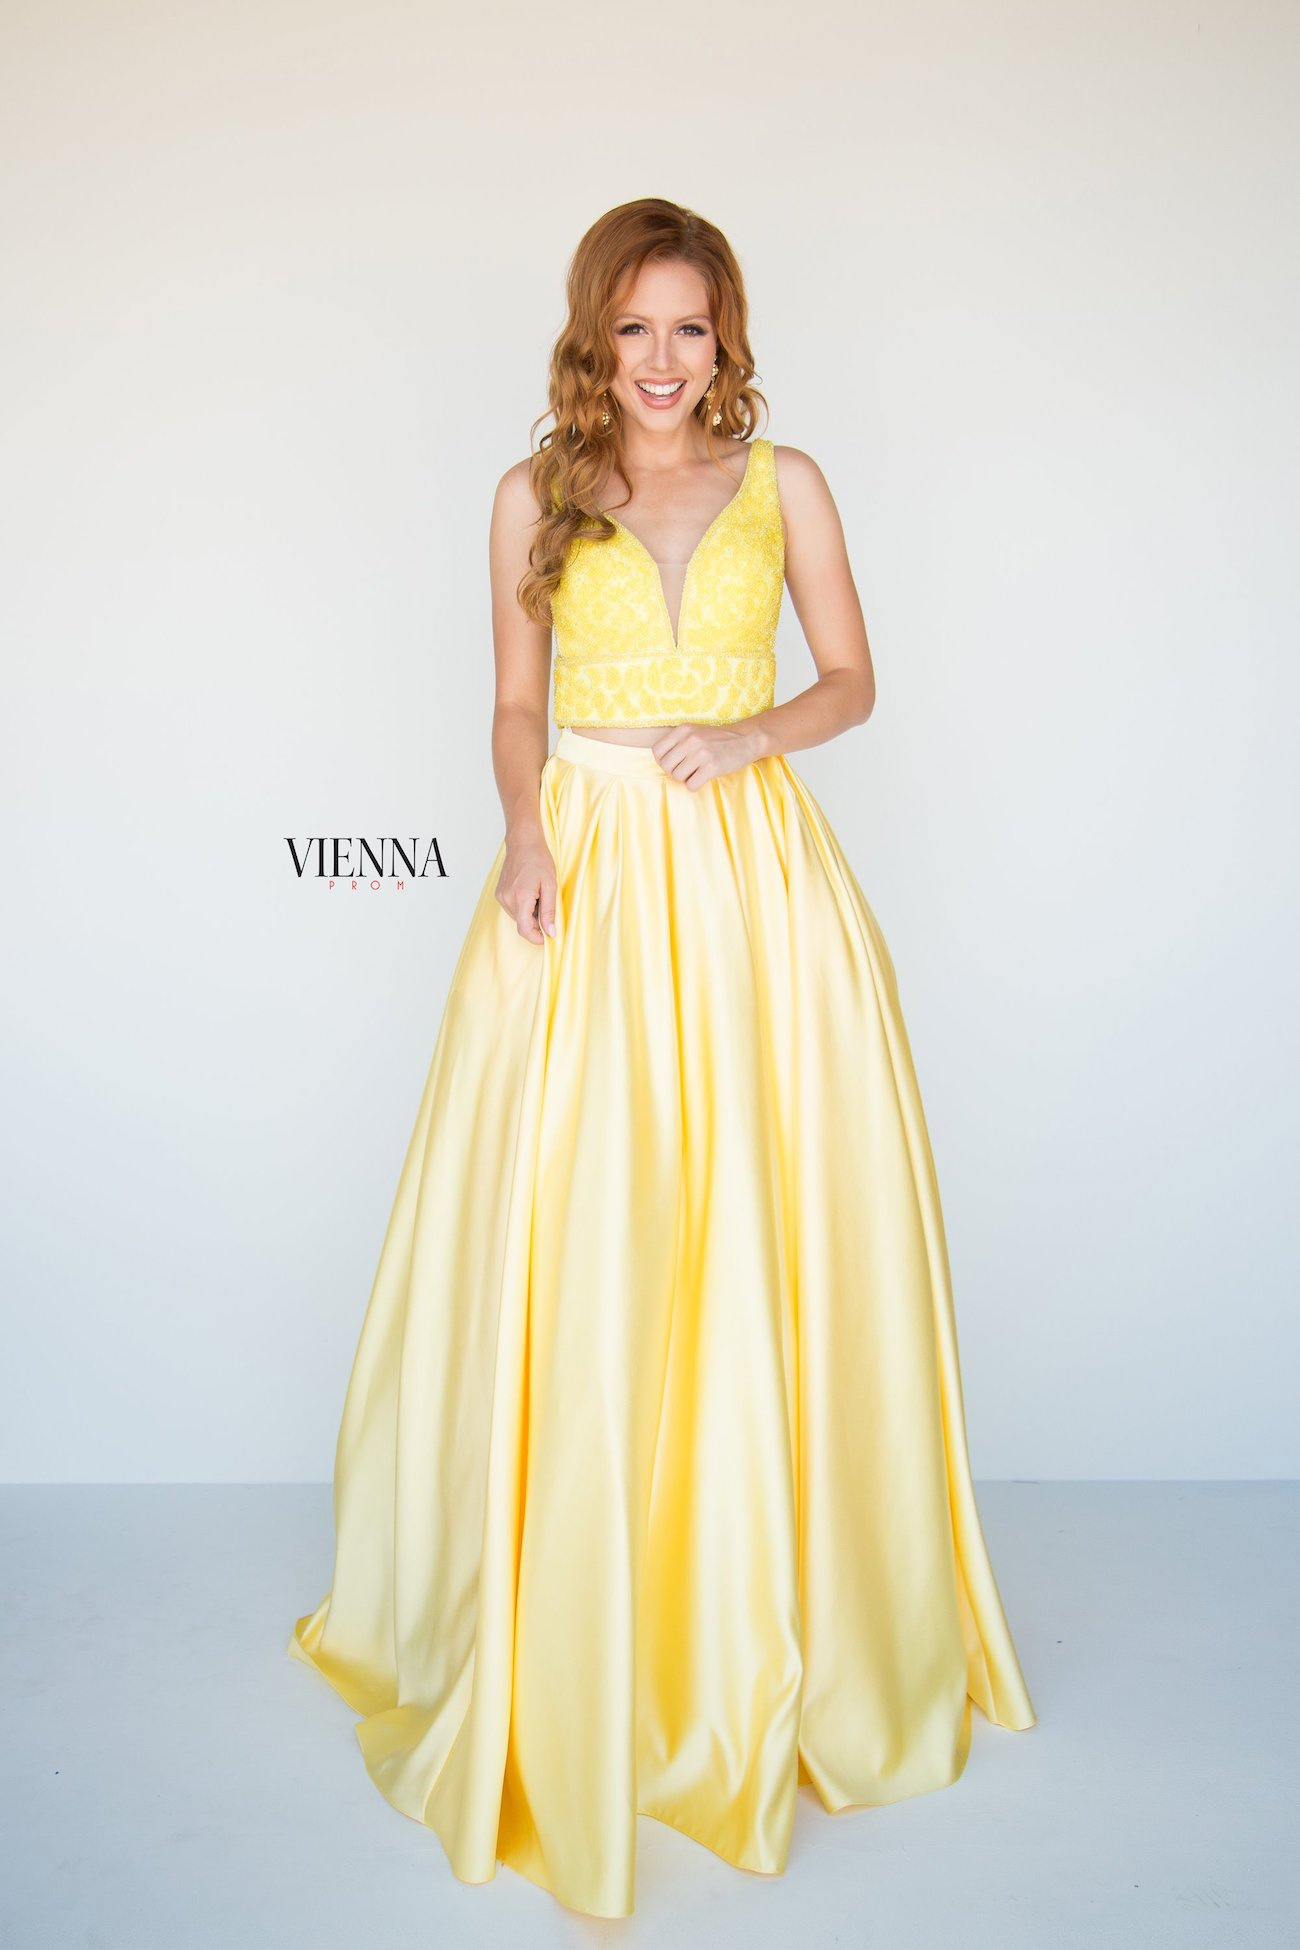 Style 7816 Vienna Yellow Size 0 Pageant Backless Tall Height A-line Dress on Queenly